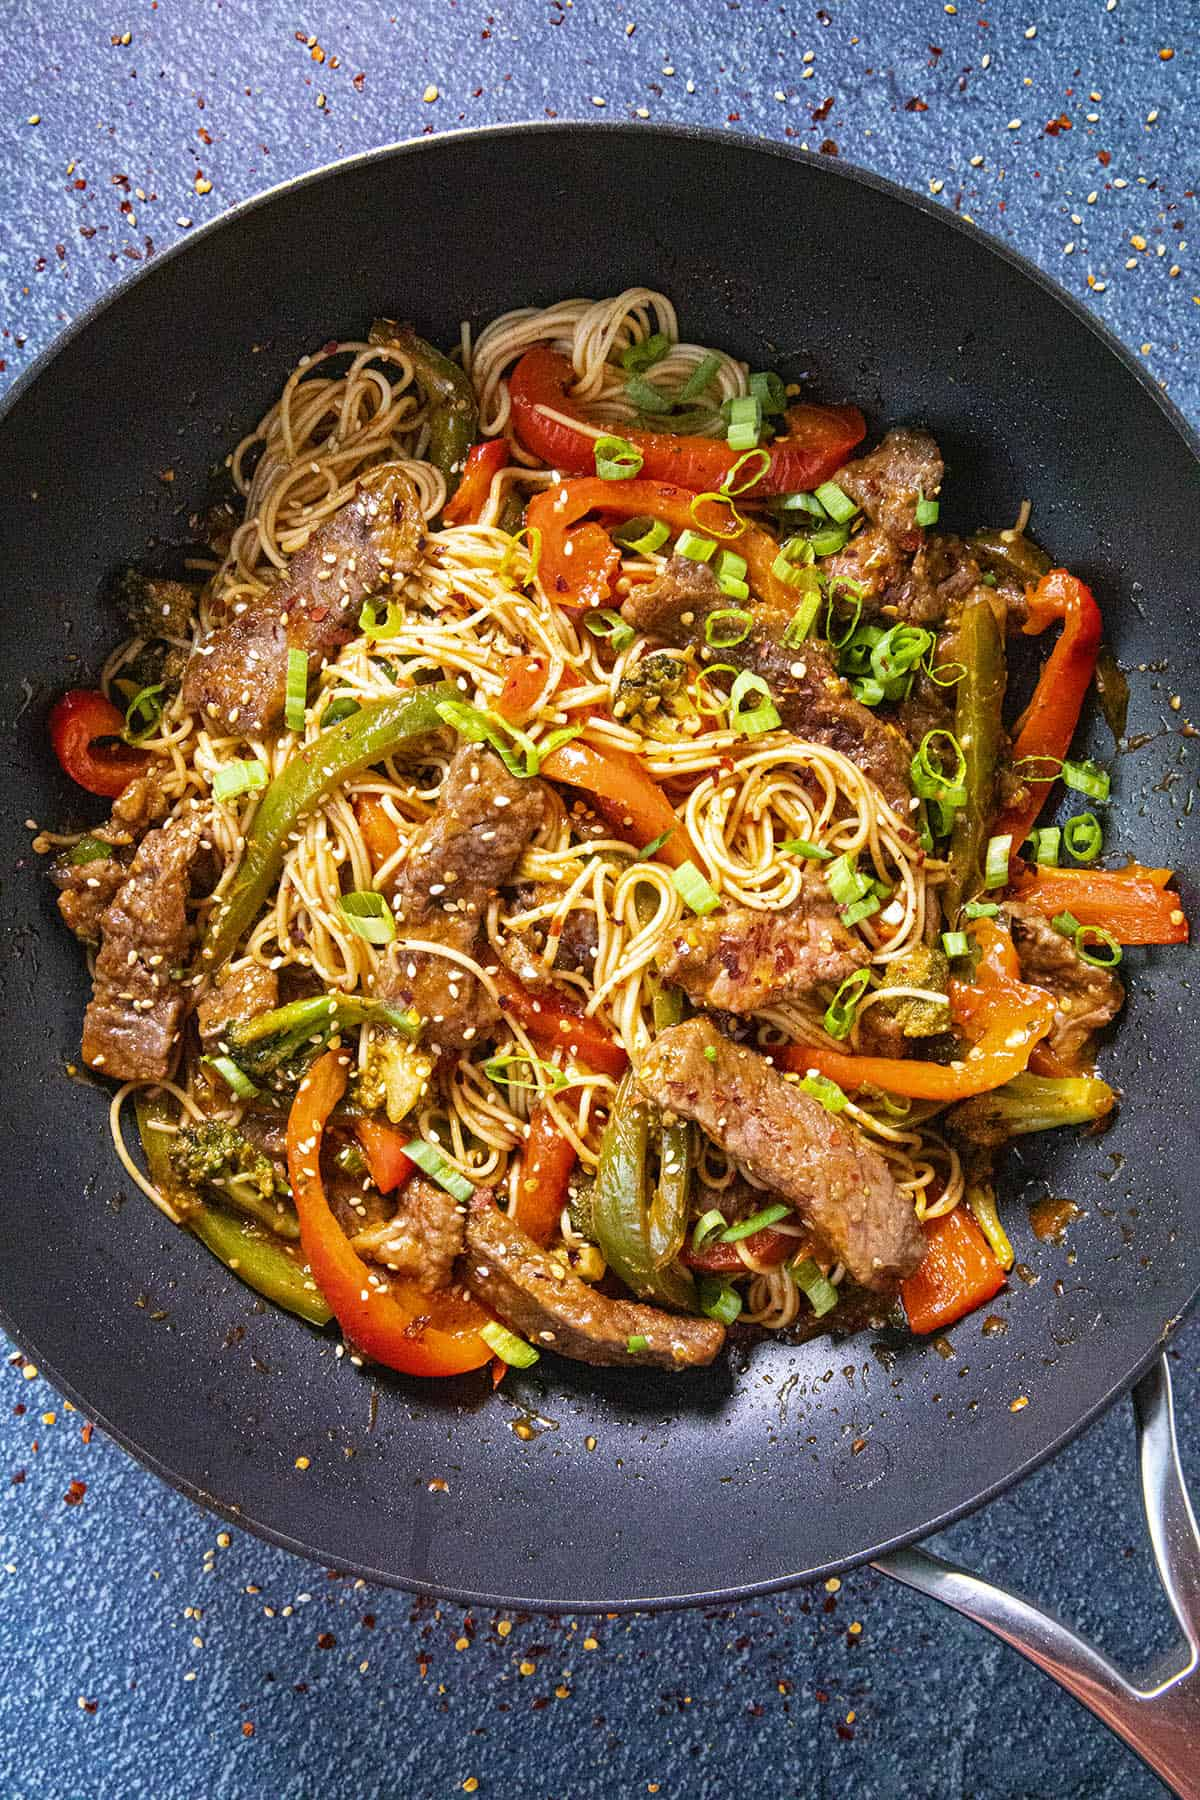 Beef Stir Fry in a pan with noodles